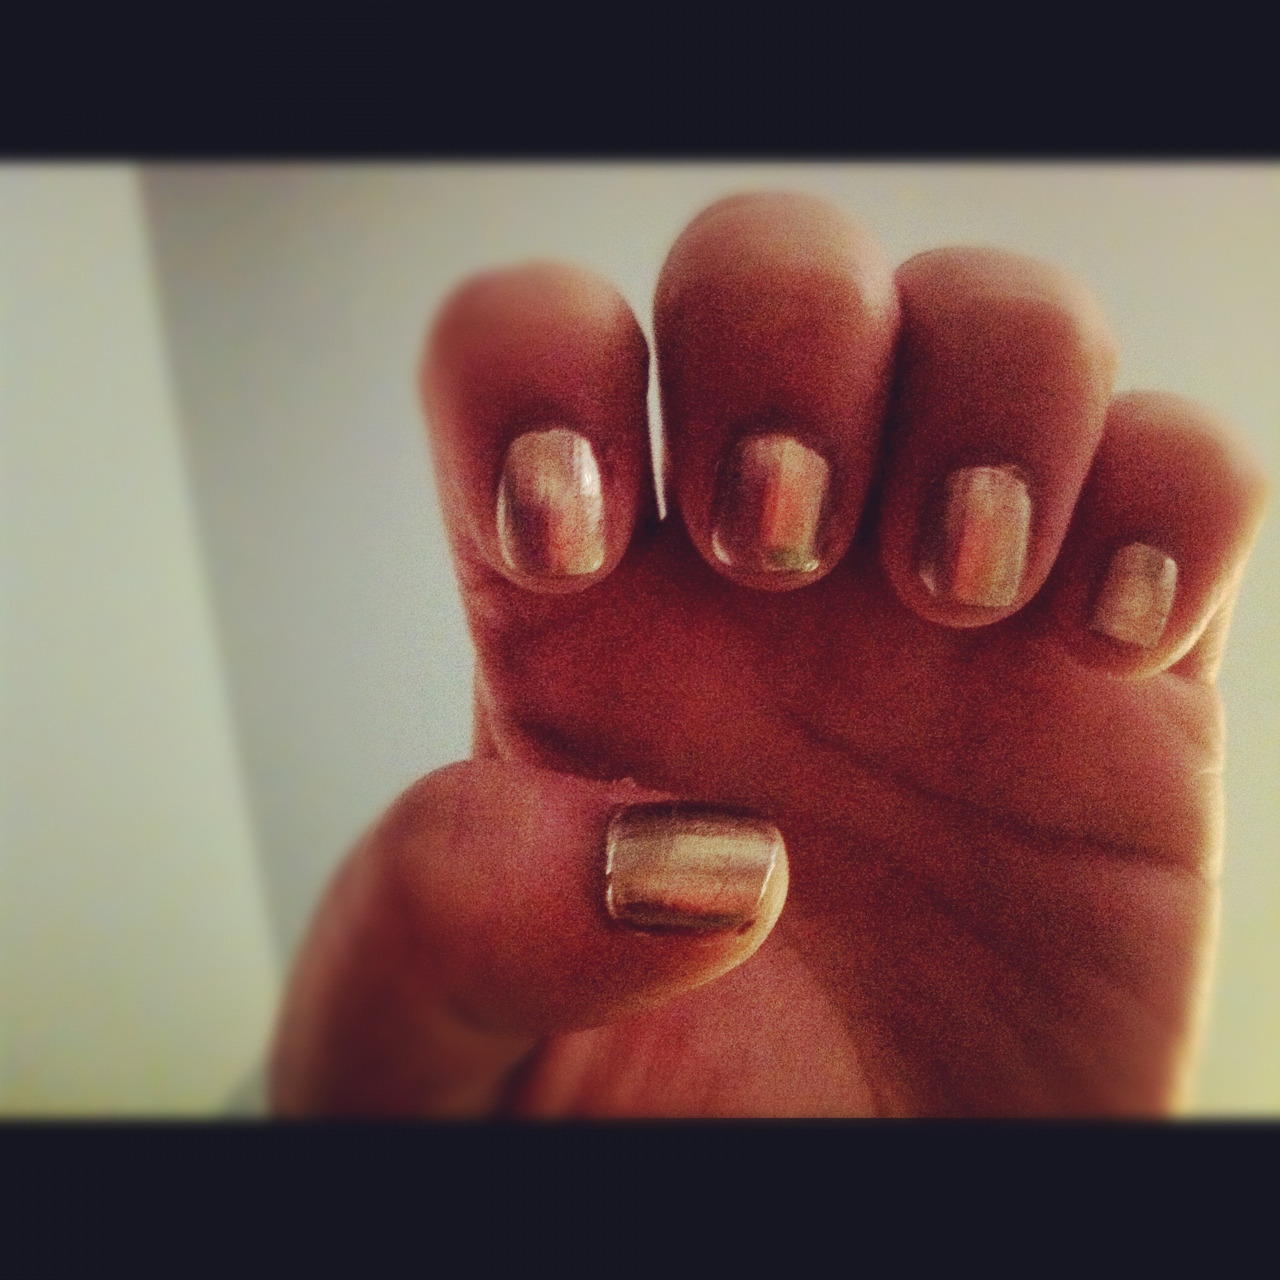 Gold metallic nail polish!